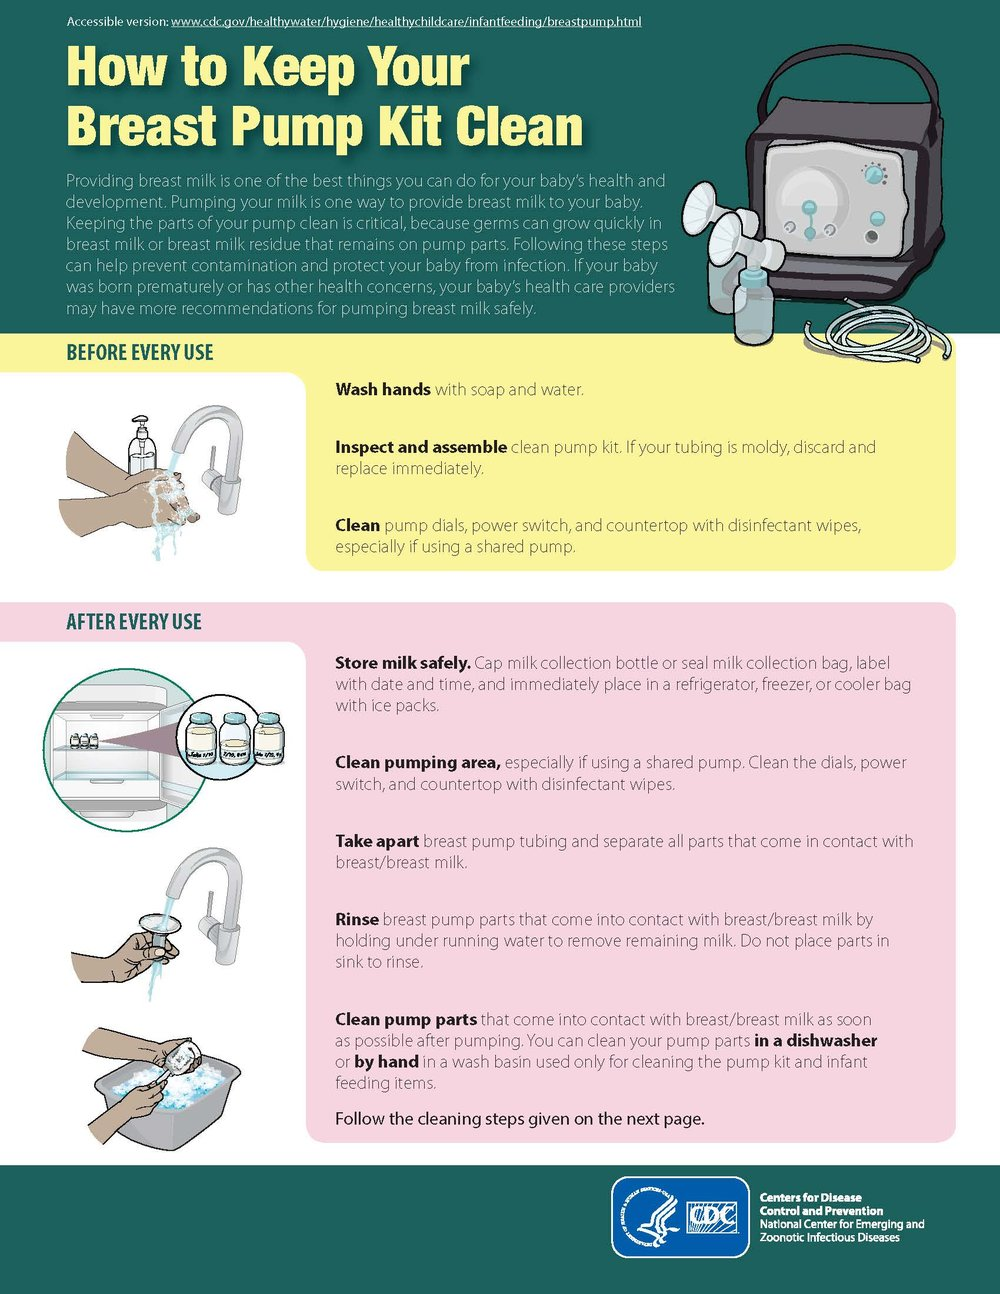 breast-pump-fact-sheet_Part1.jpg